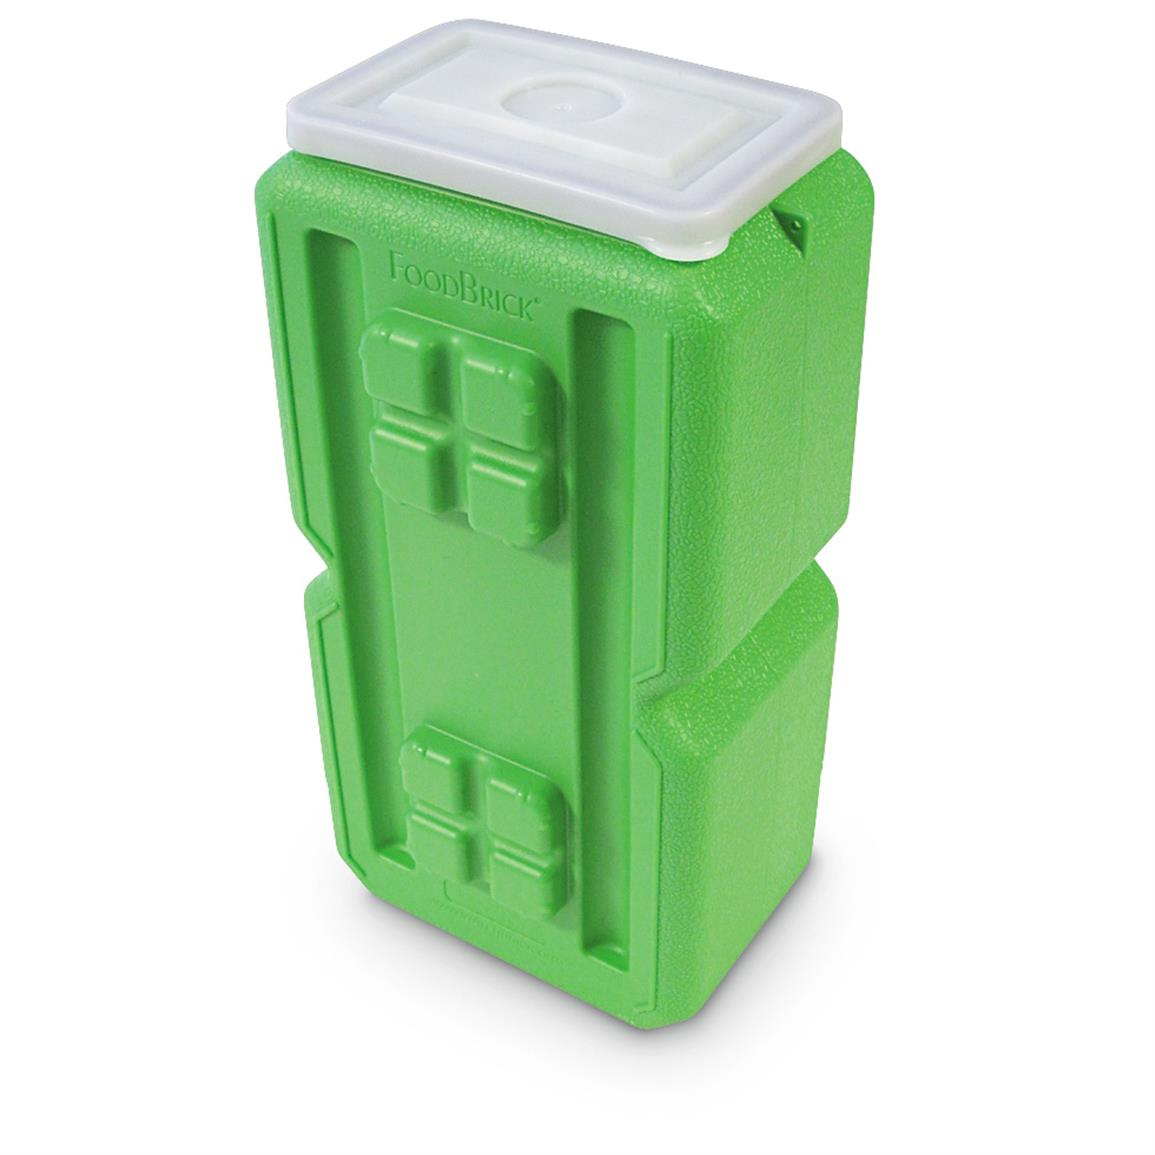 FoodBrick Food / Ammo Container, 3.5 Gallon Capacity